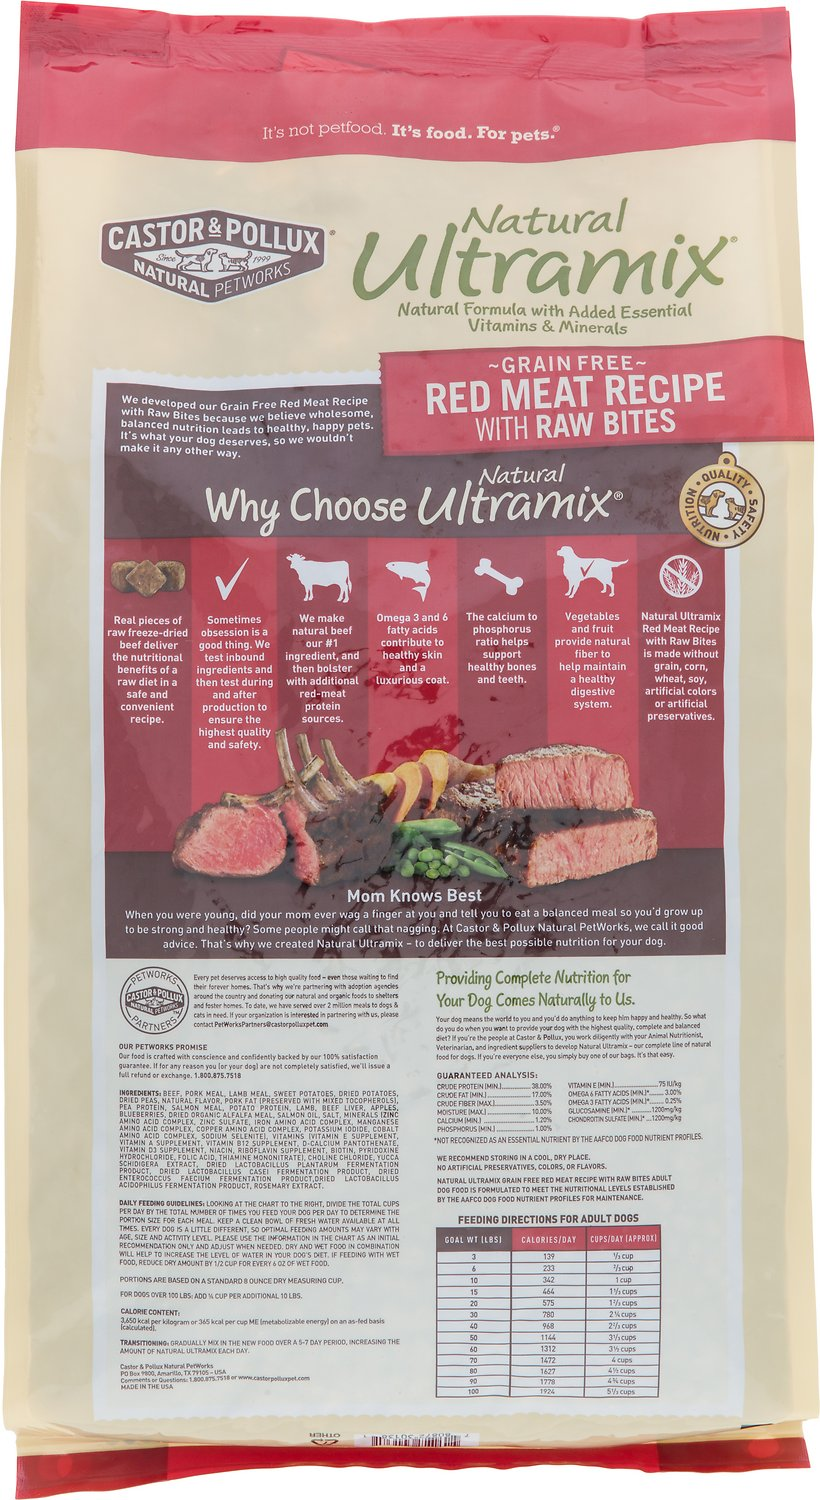 Natural Ultramix Grain Free Red Meat Recipe With Raw Bites